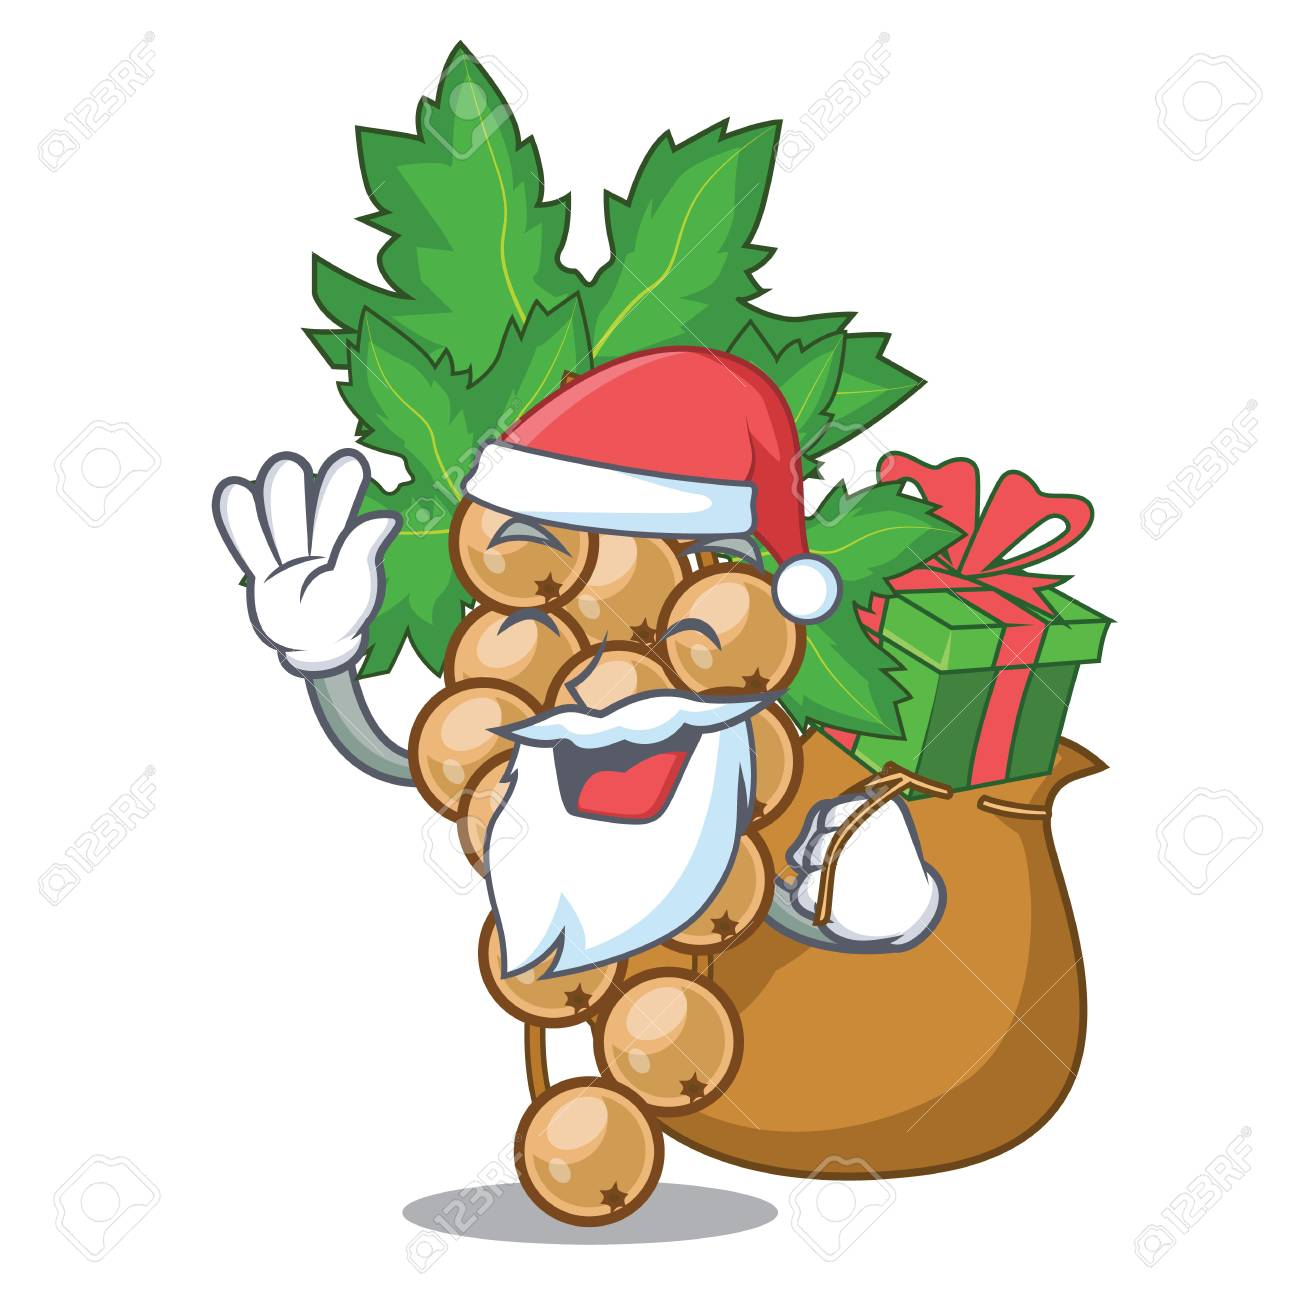 Santa with gift carrunt white above the mascot bowl vector illustration - 125478135